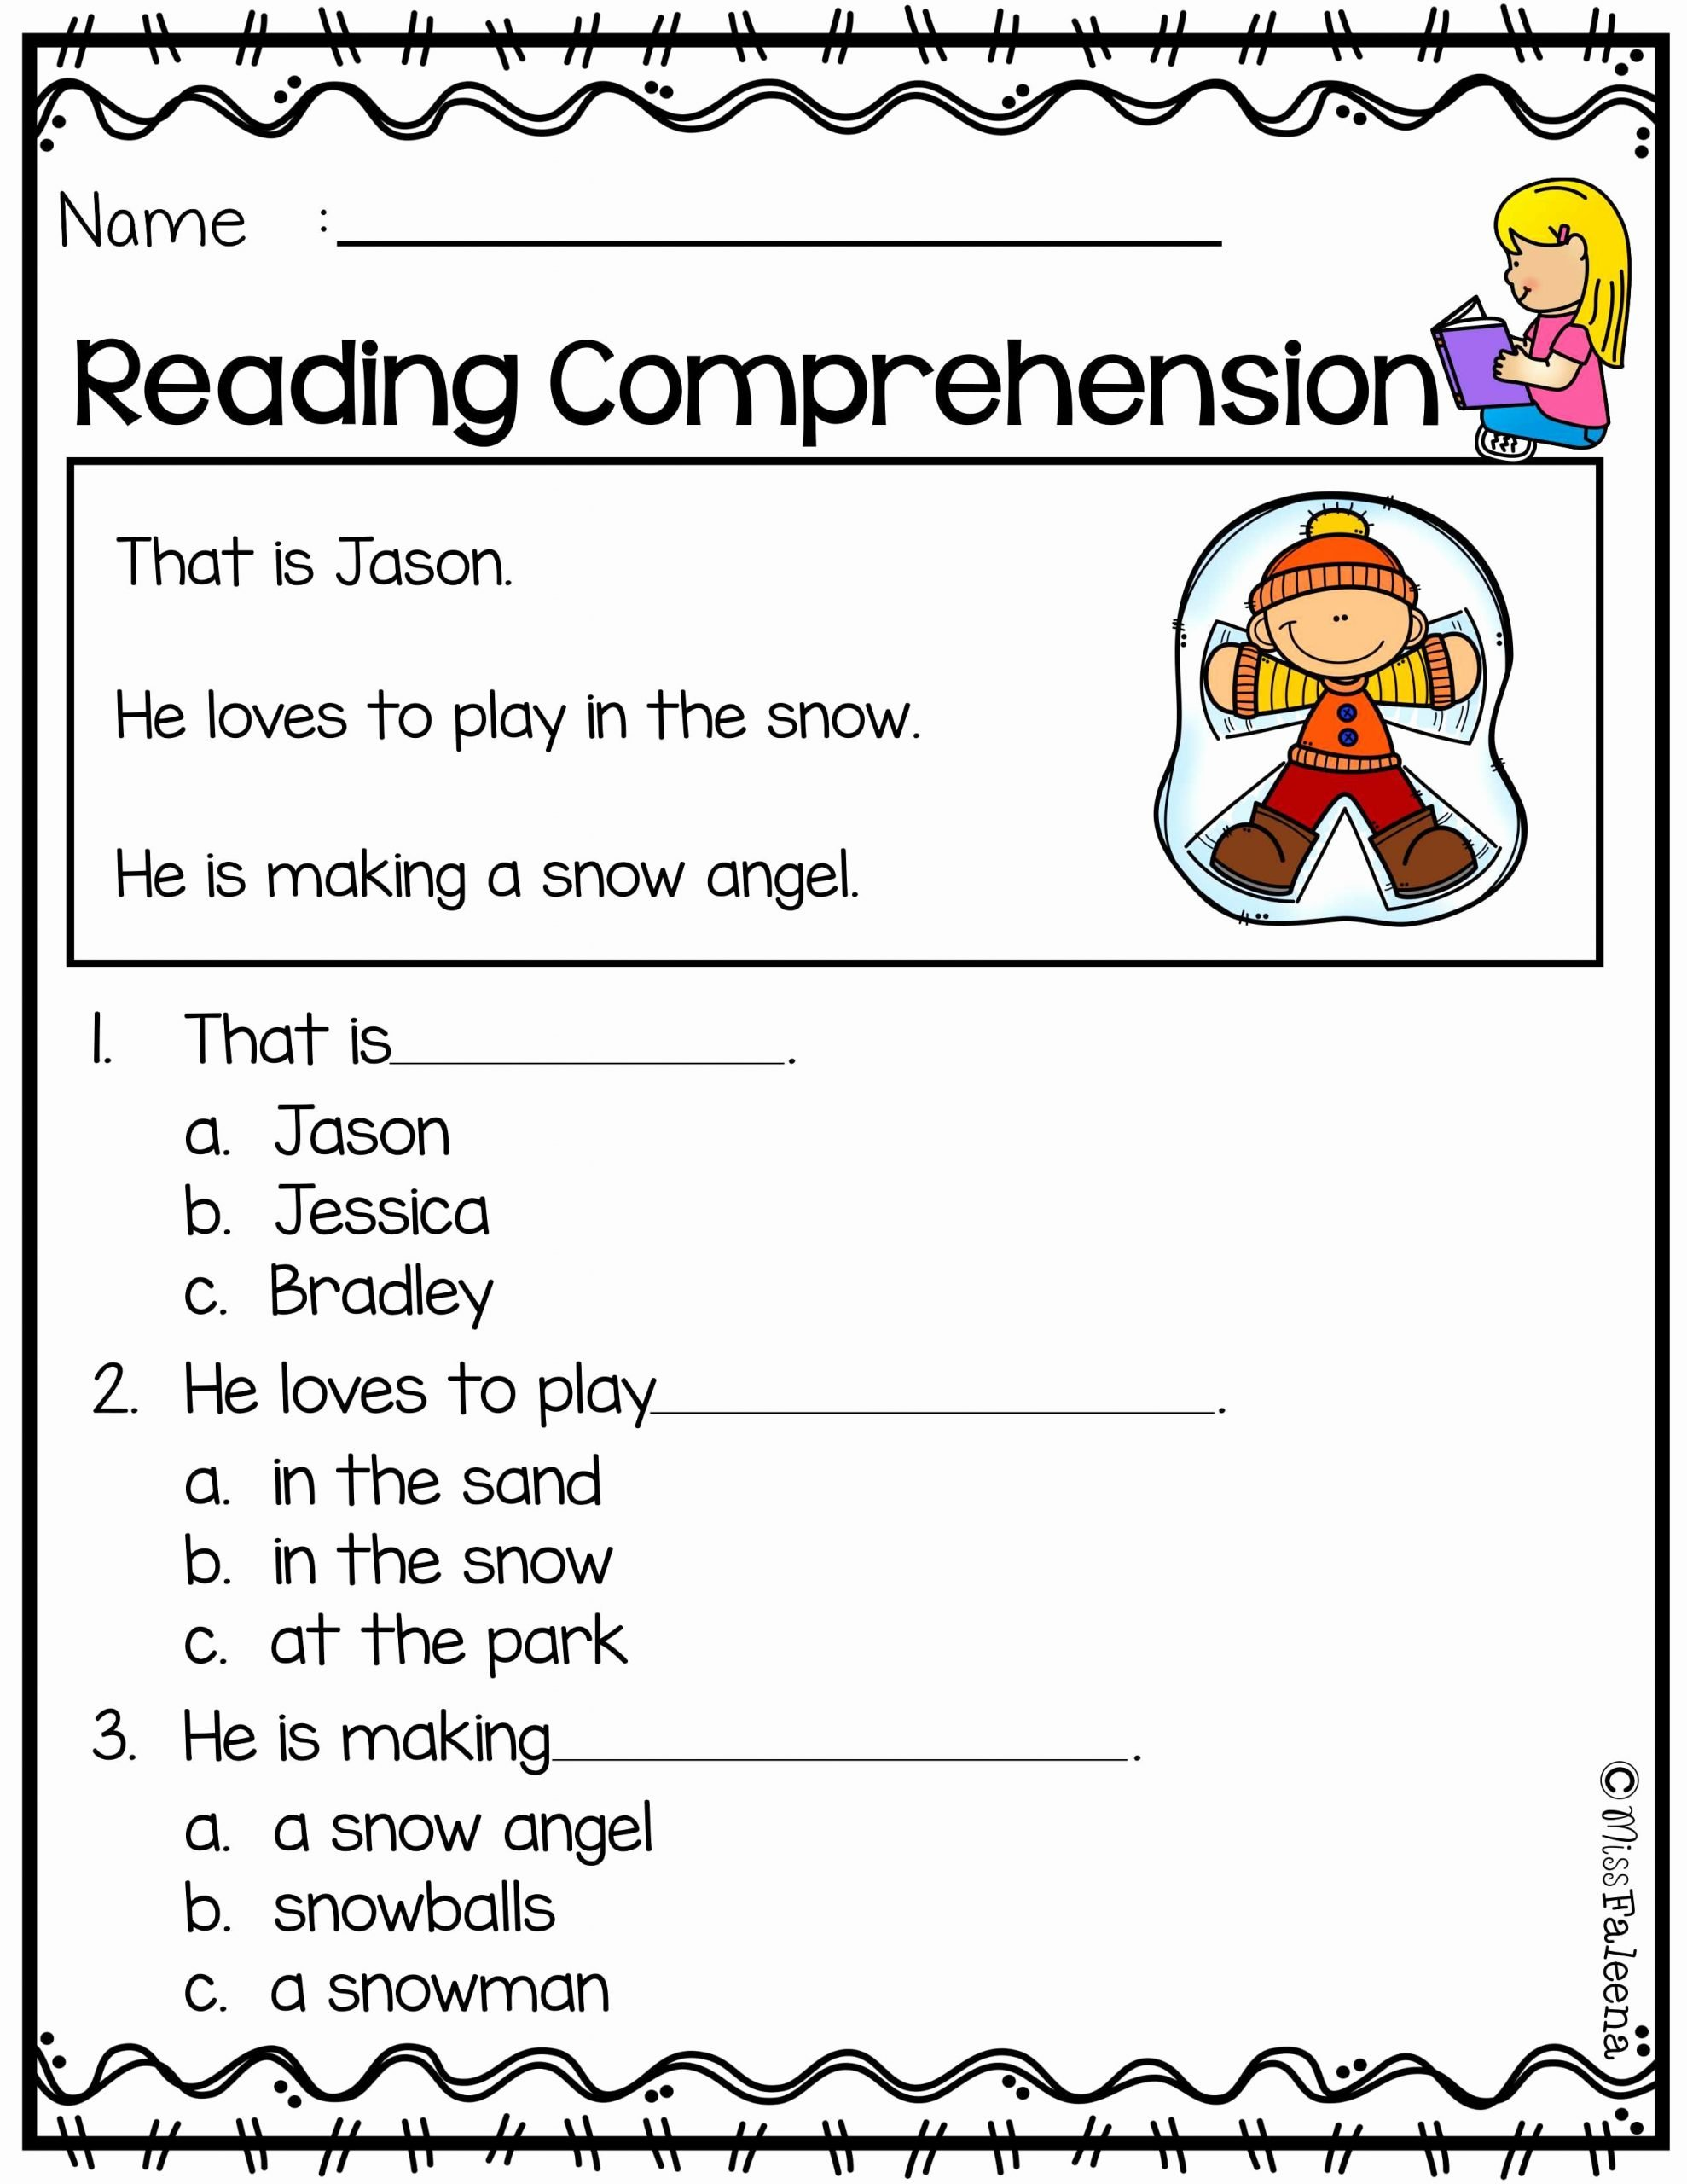 Comprehension Worksheets for Preschoolers Inspirational Free Reading Prehension